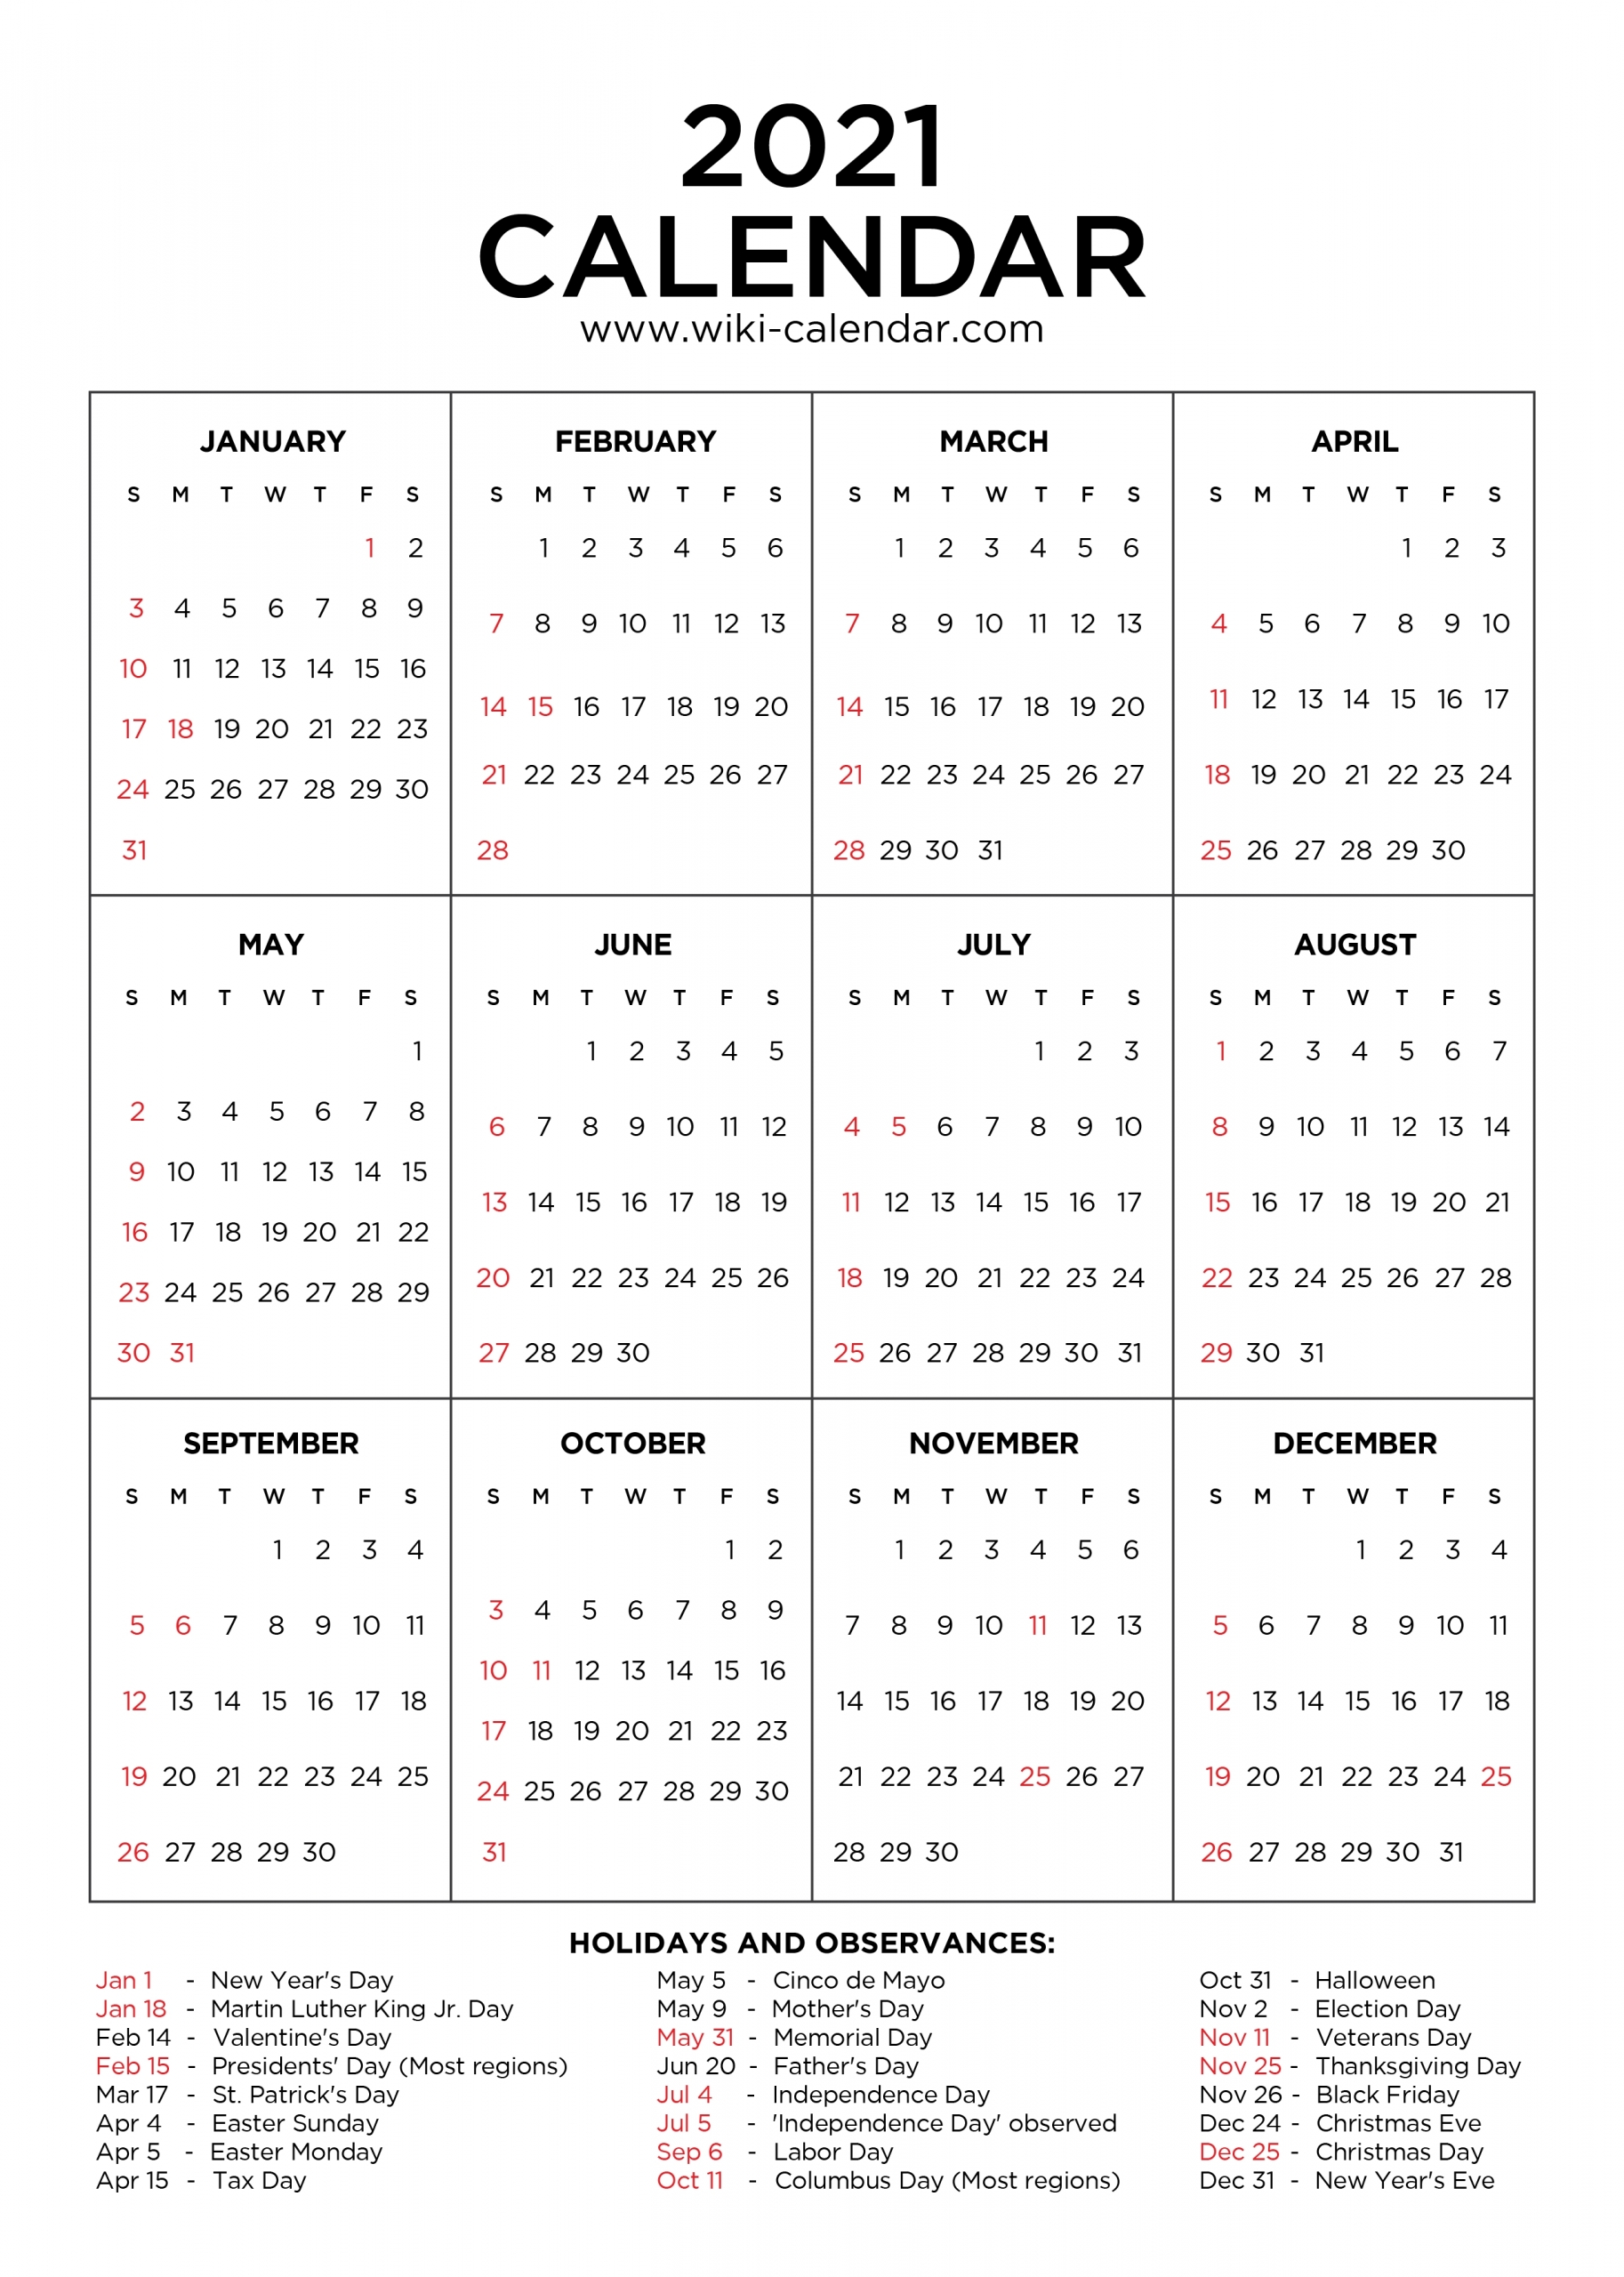 2021 Calendar With Holidays Printable | Calendar Template Printable pertaining to Free Printable Yearly Calendars 2021 Portrait